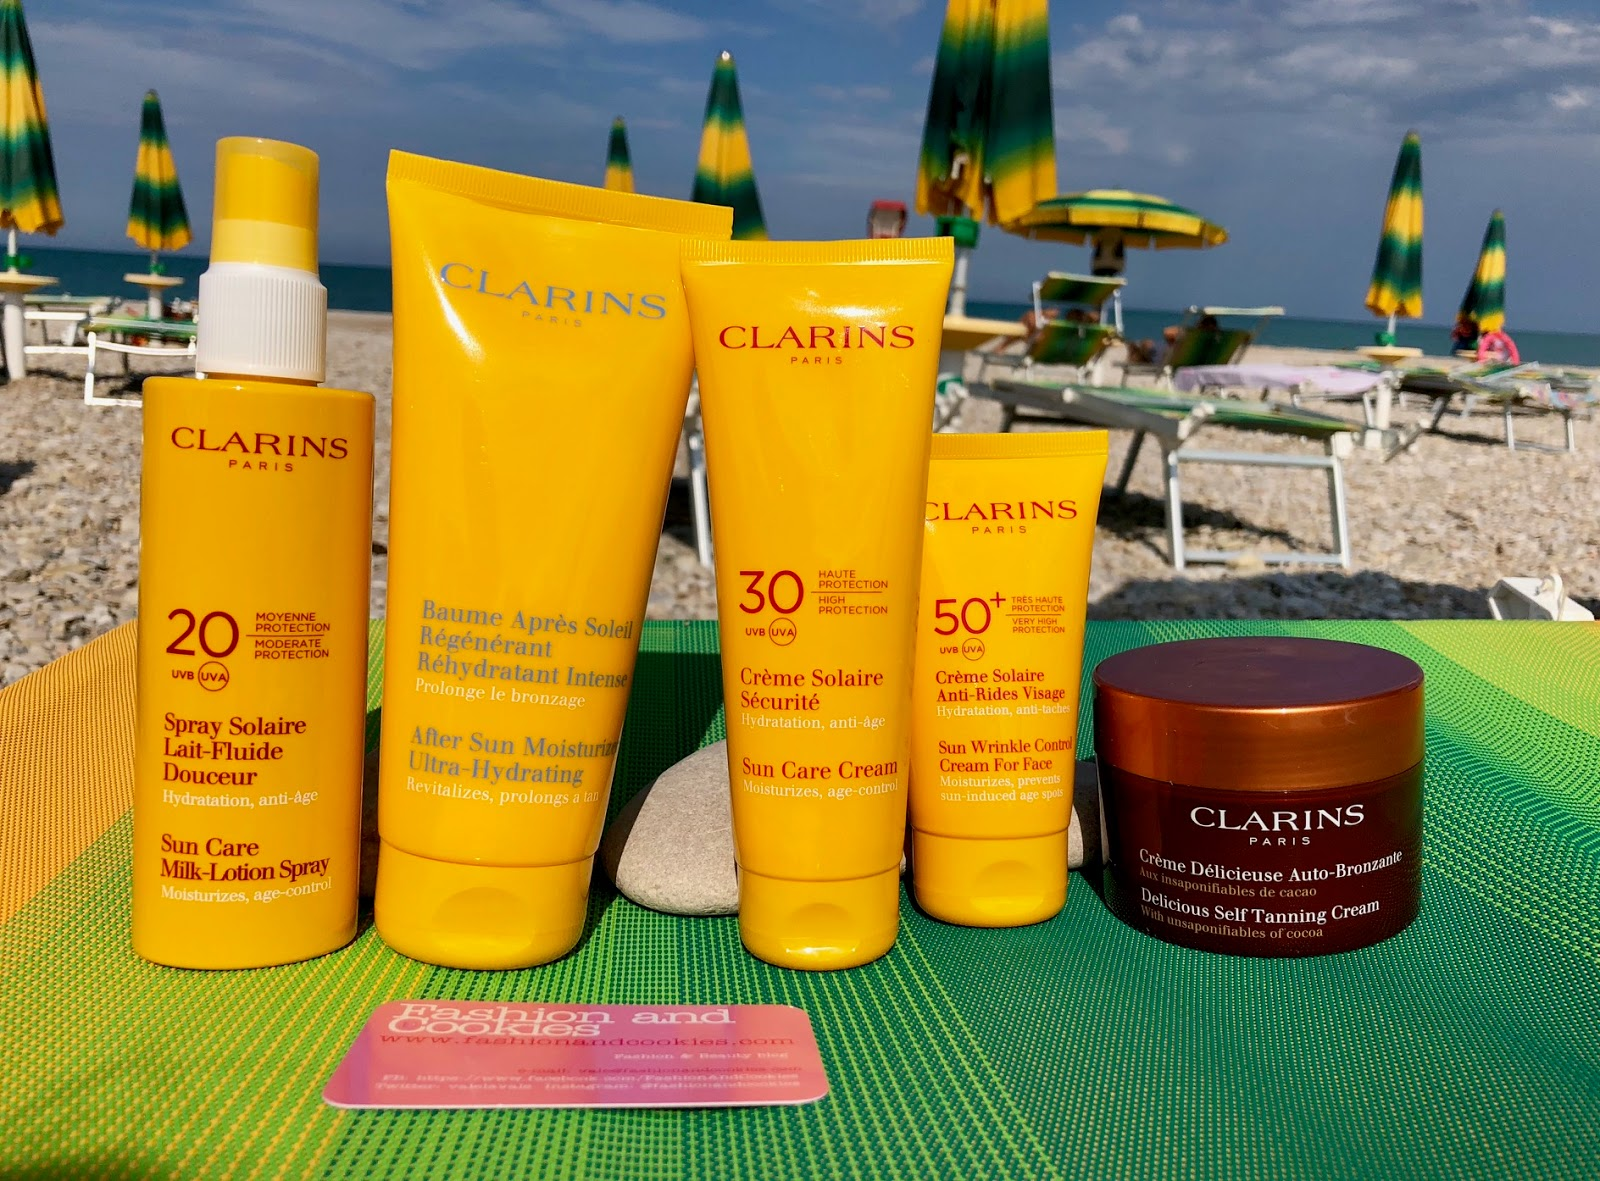 Abbronzarsi in sicurezza con i solari Clarins su Fashion and Cookies beauty blog, beauty blogger